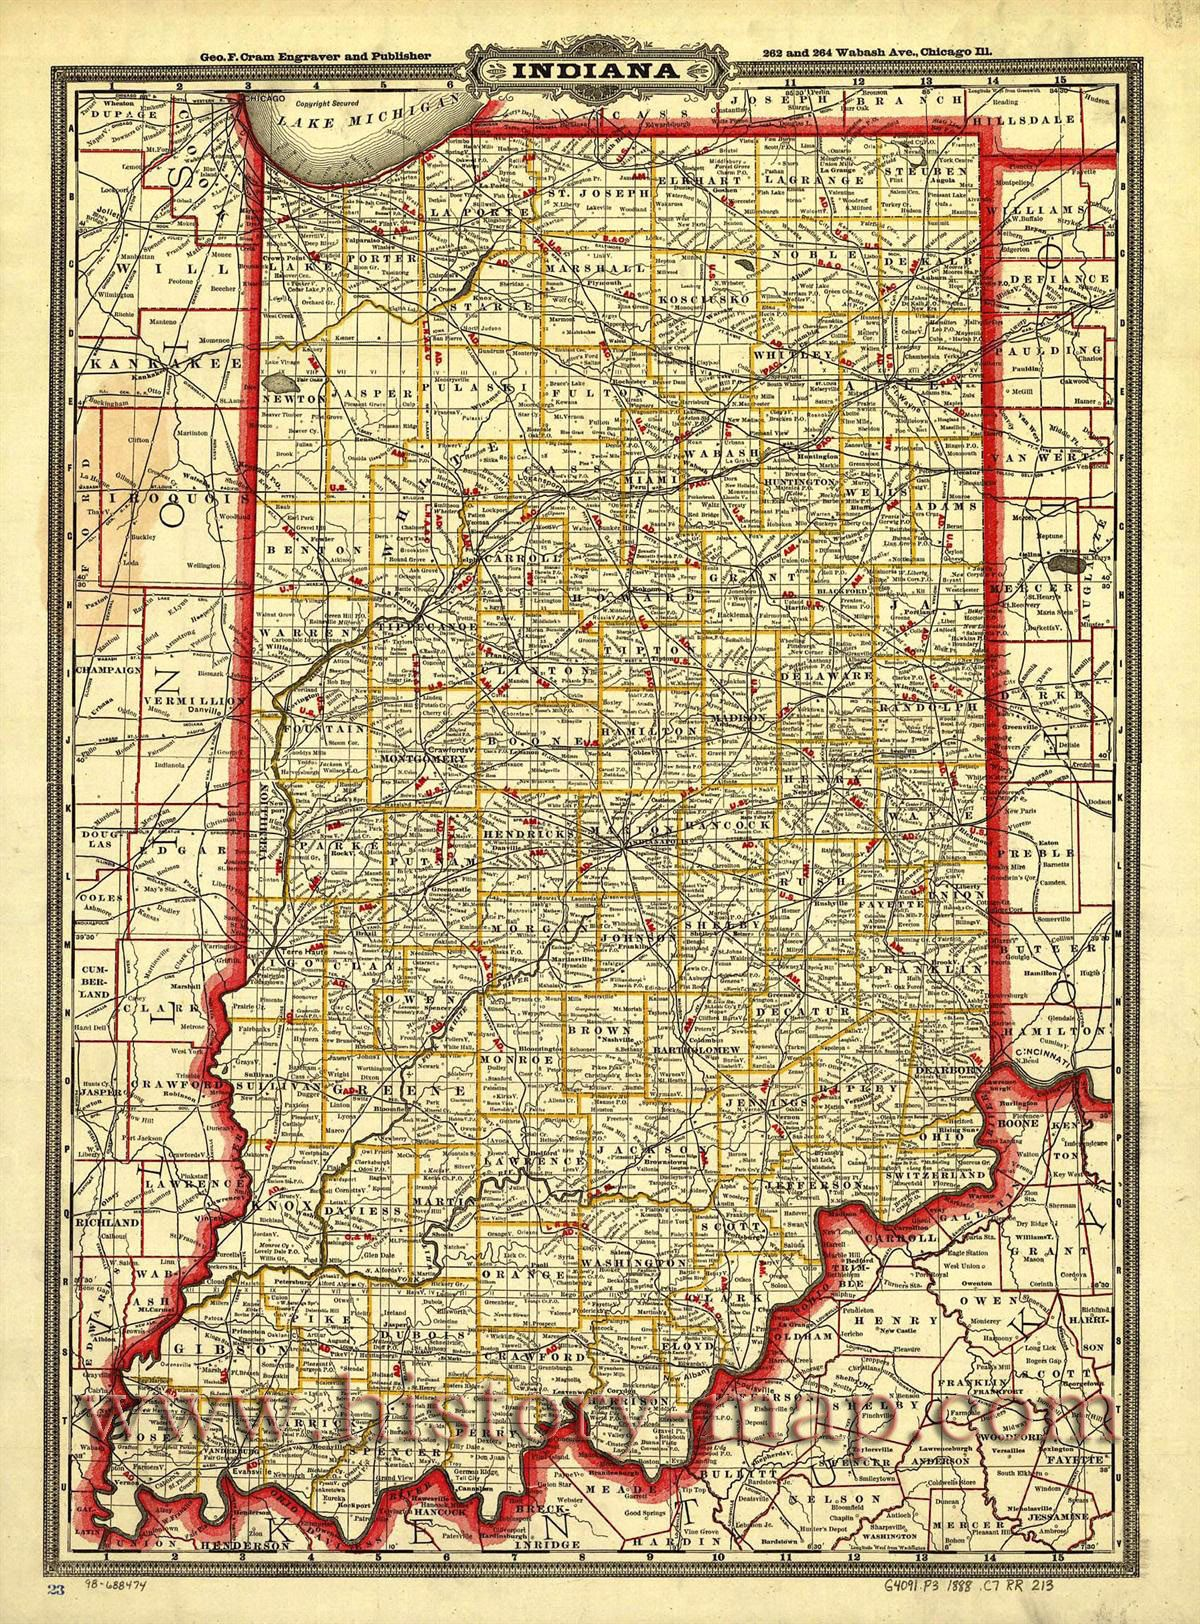 Township And Railroad Map Of Indiana Taken In Shows Railroad - Road map of indiana